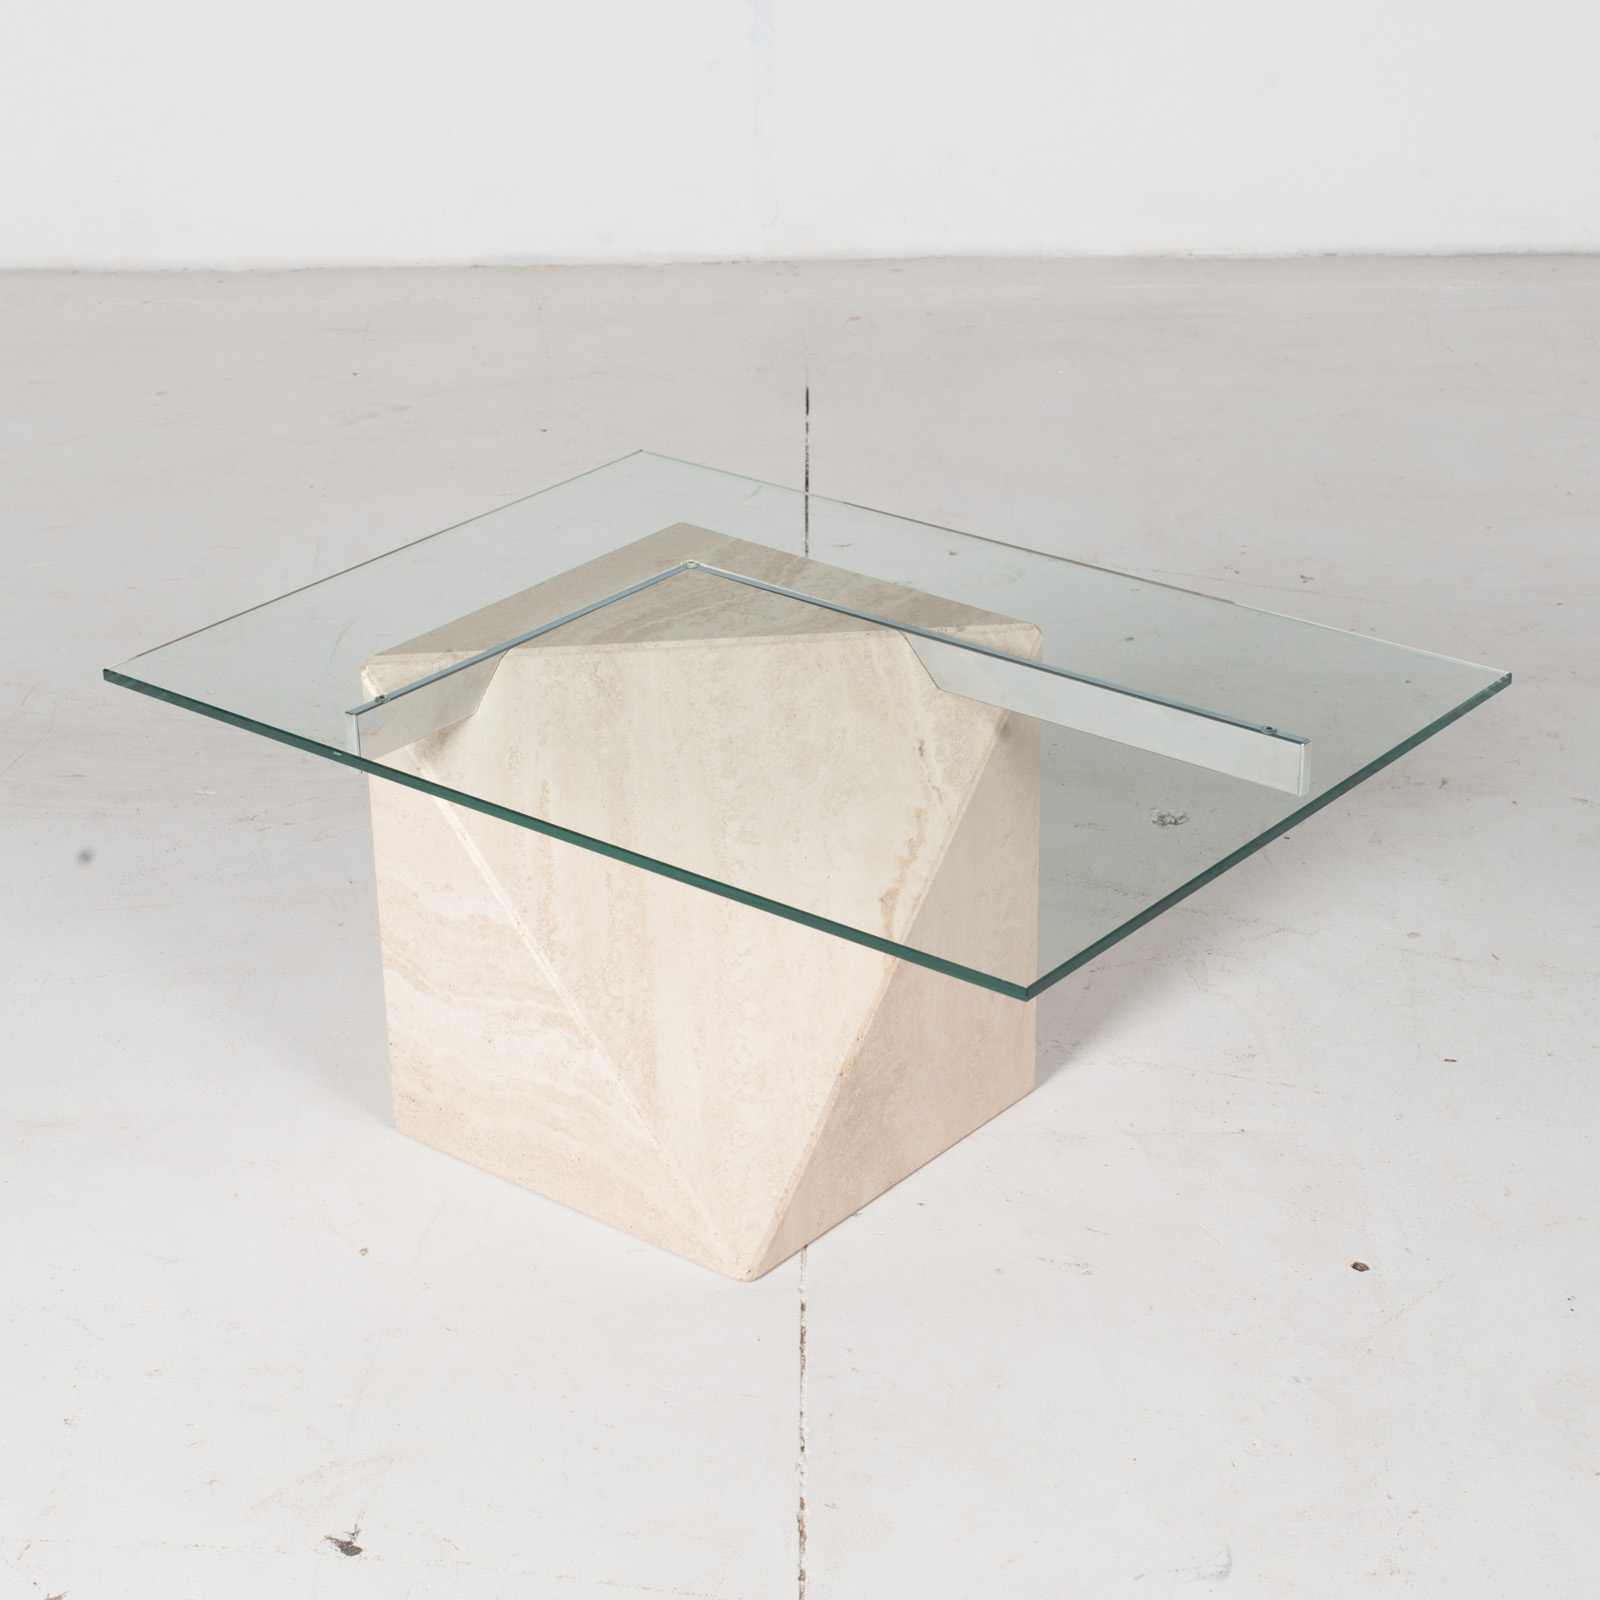 Coffee Table By Artedi In Travertine, Cantilevered Glass And Chrome, 1970s, Italy5